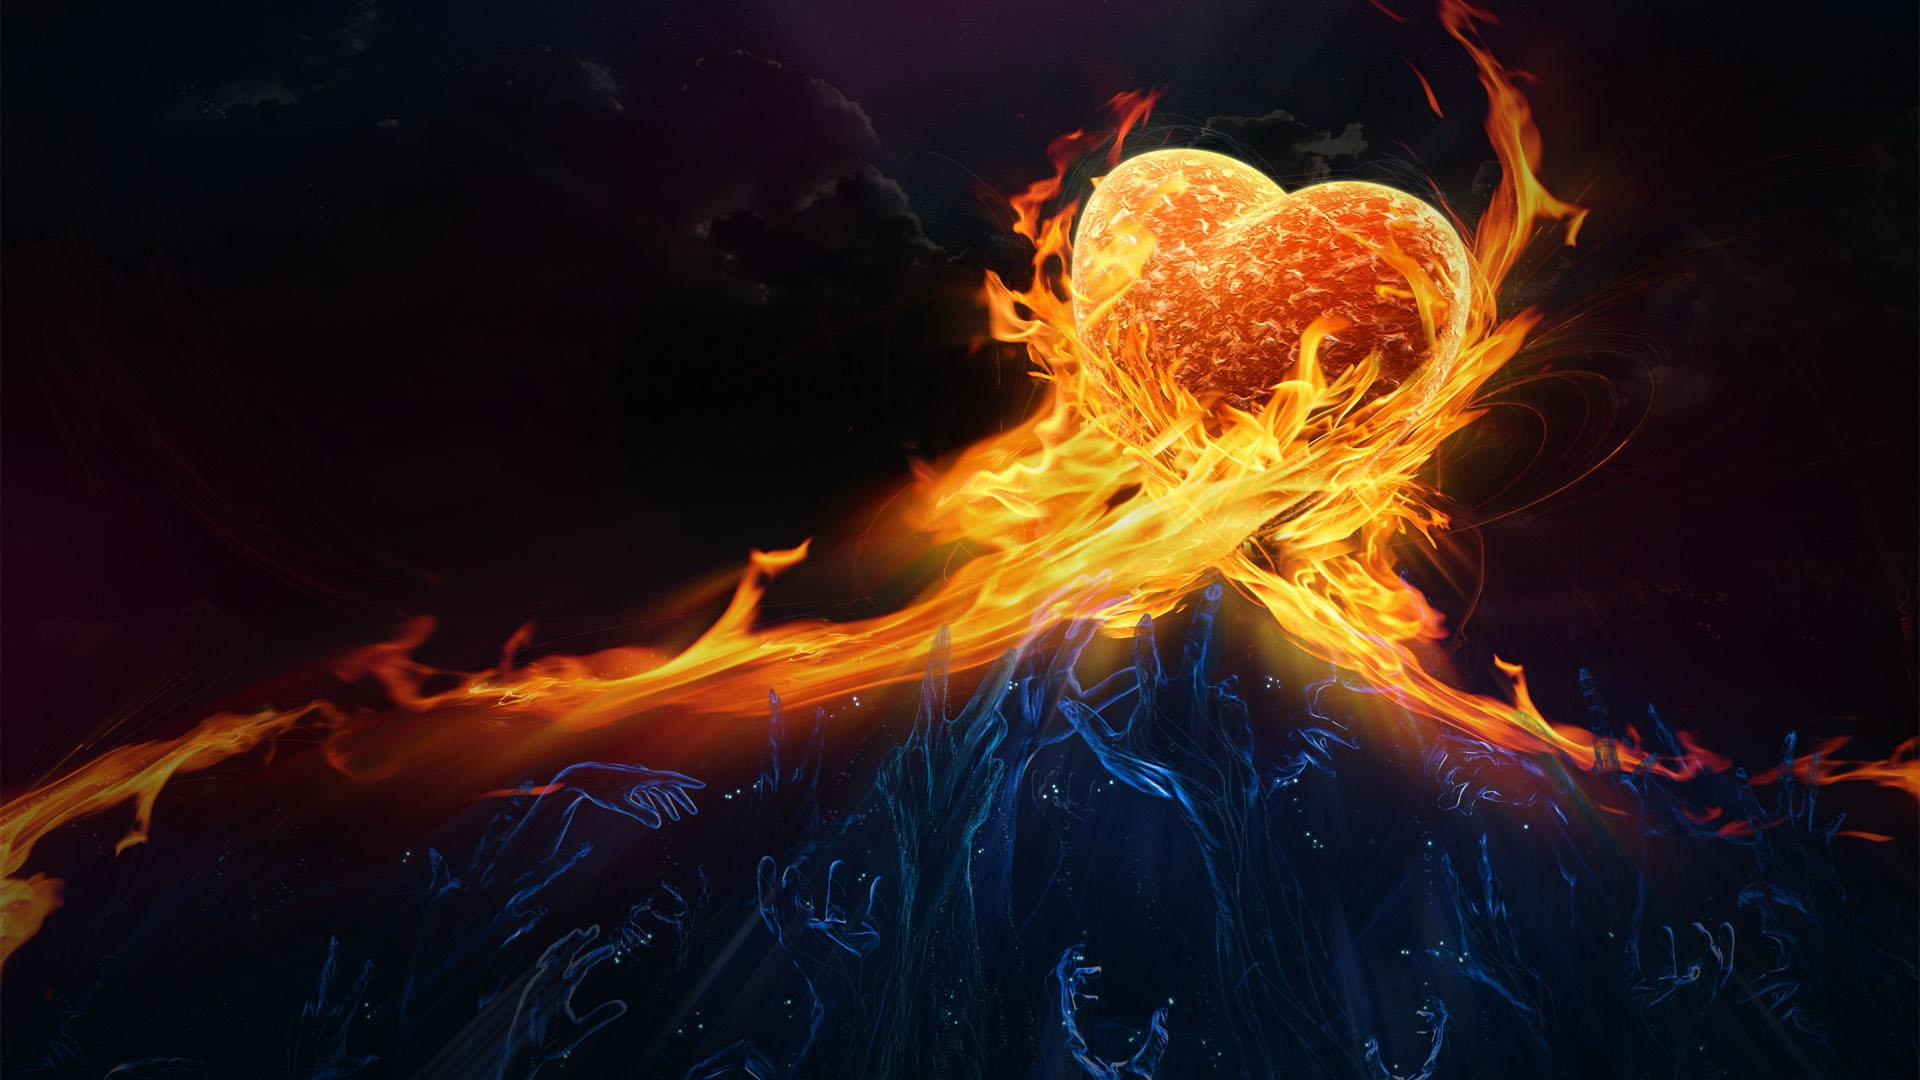 Fire Animated Love HD Wallpapers 6677 HD Wallpaper 3D Desktop 1920x1080